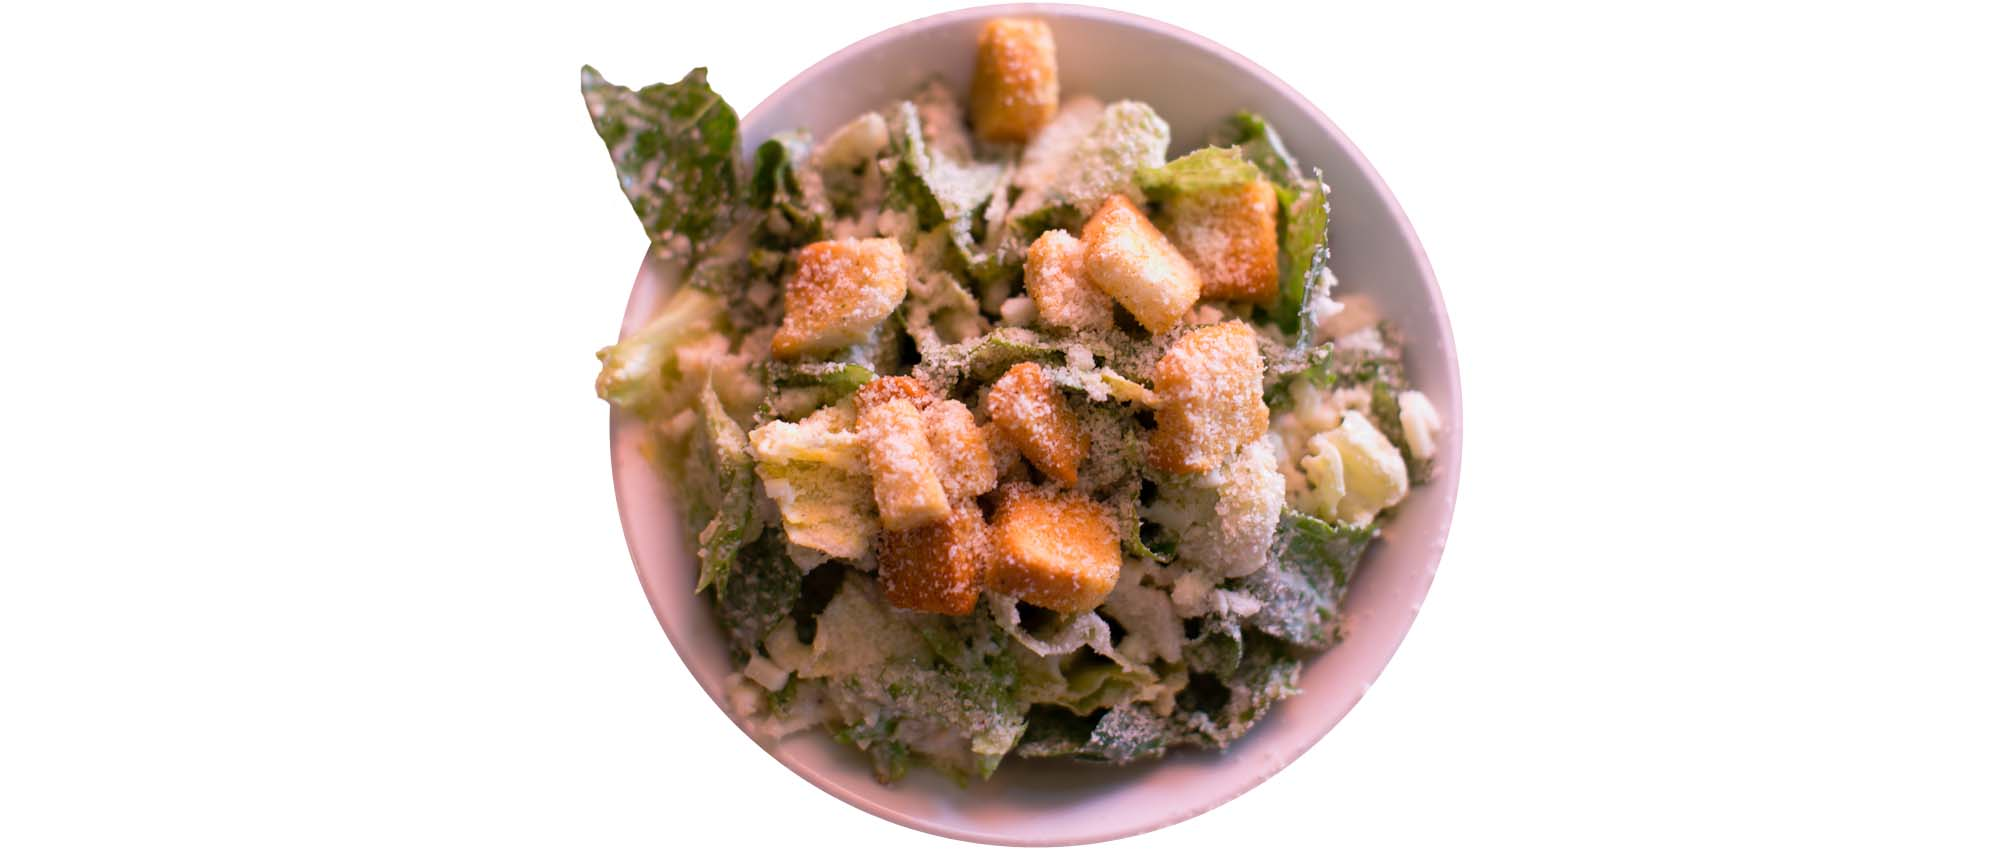 ceasar salad and croutons